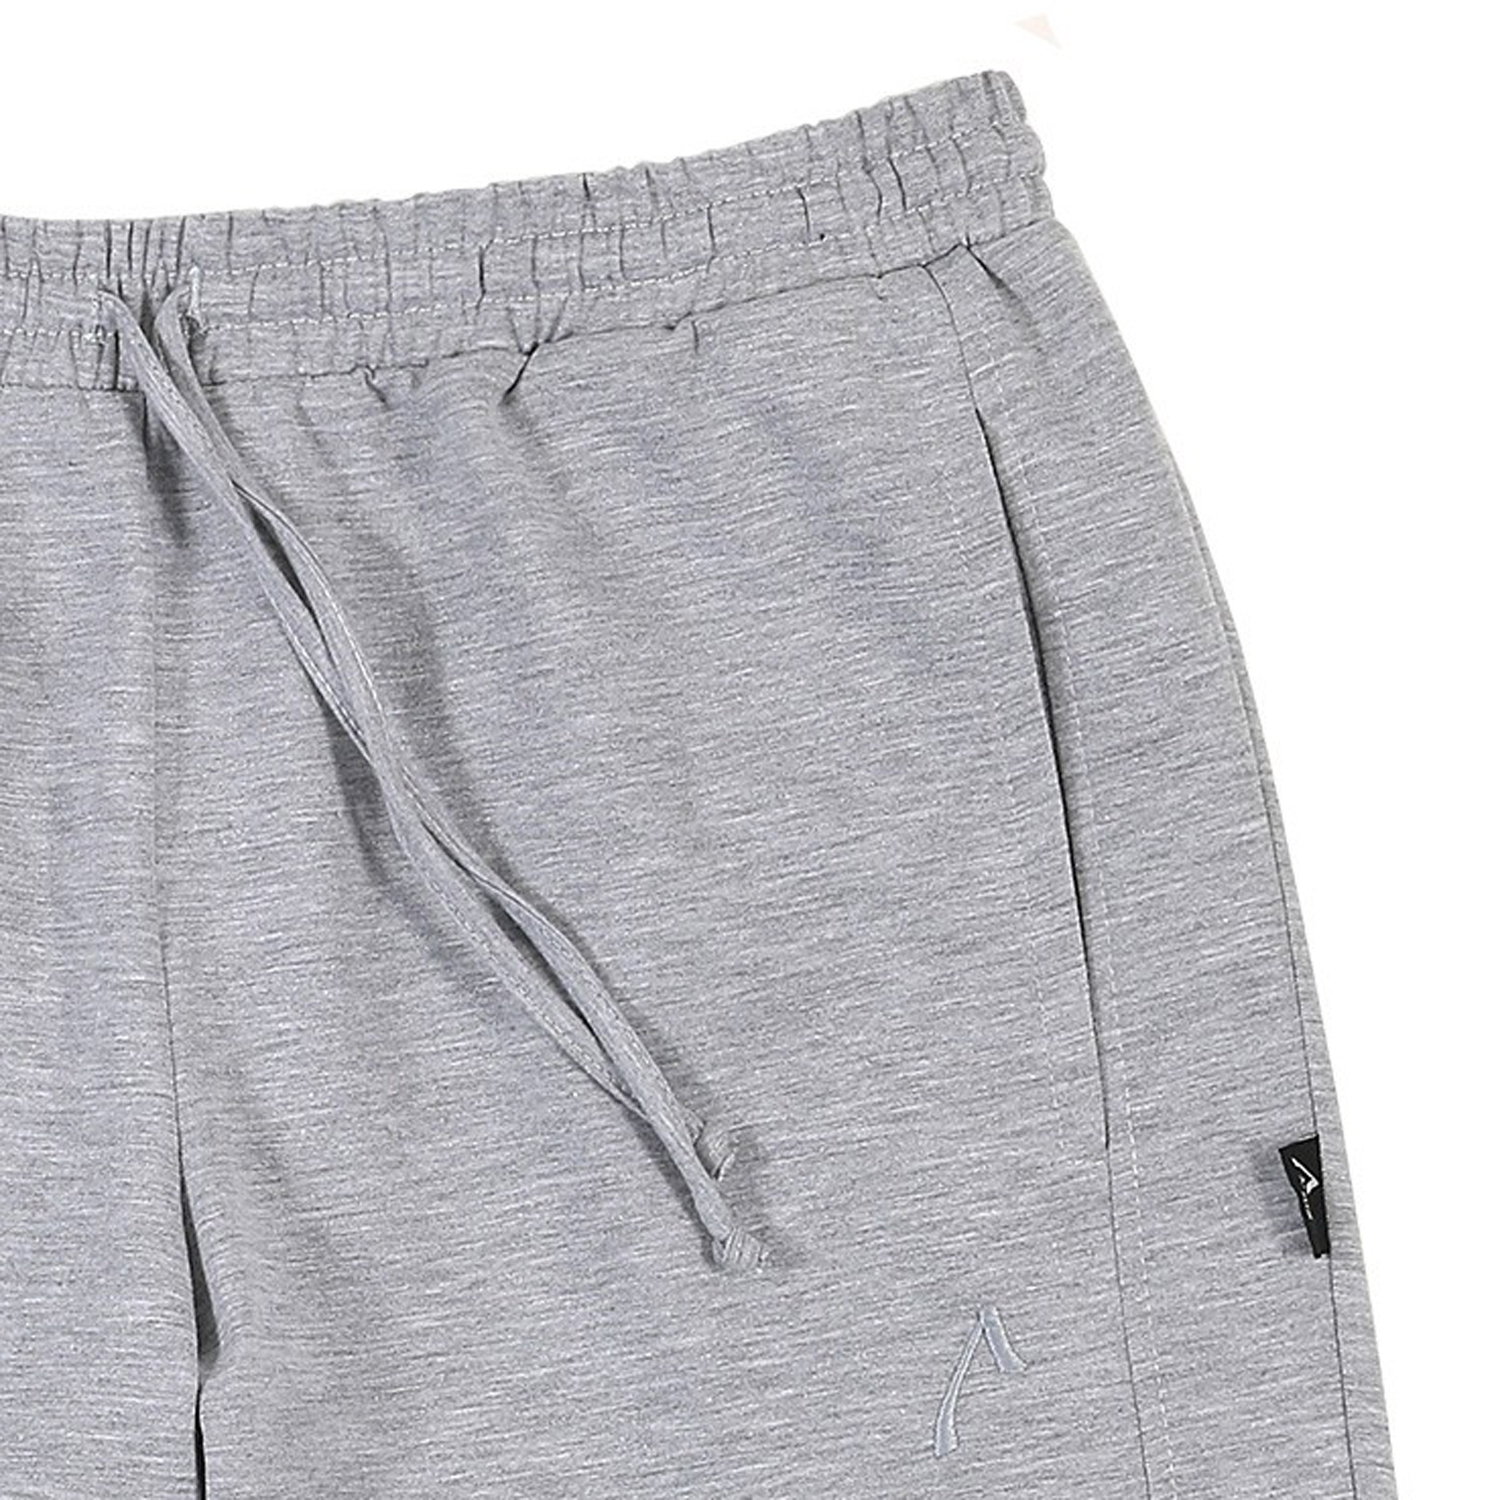 Detail Image to Sports and leisure bermuda in grey, plus sizes by AUTHENTIC KLEIN